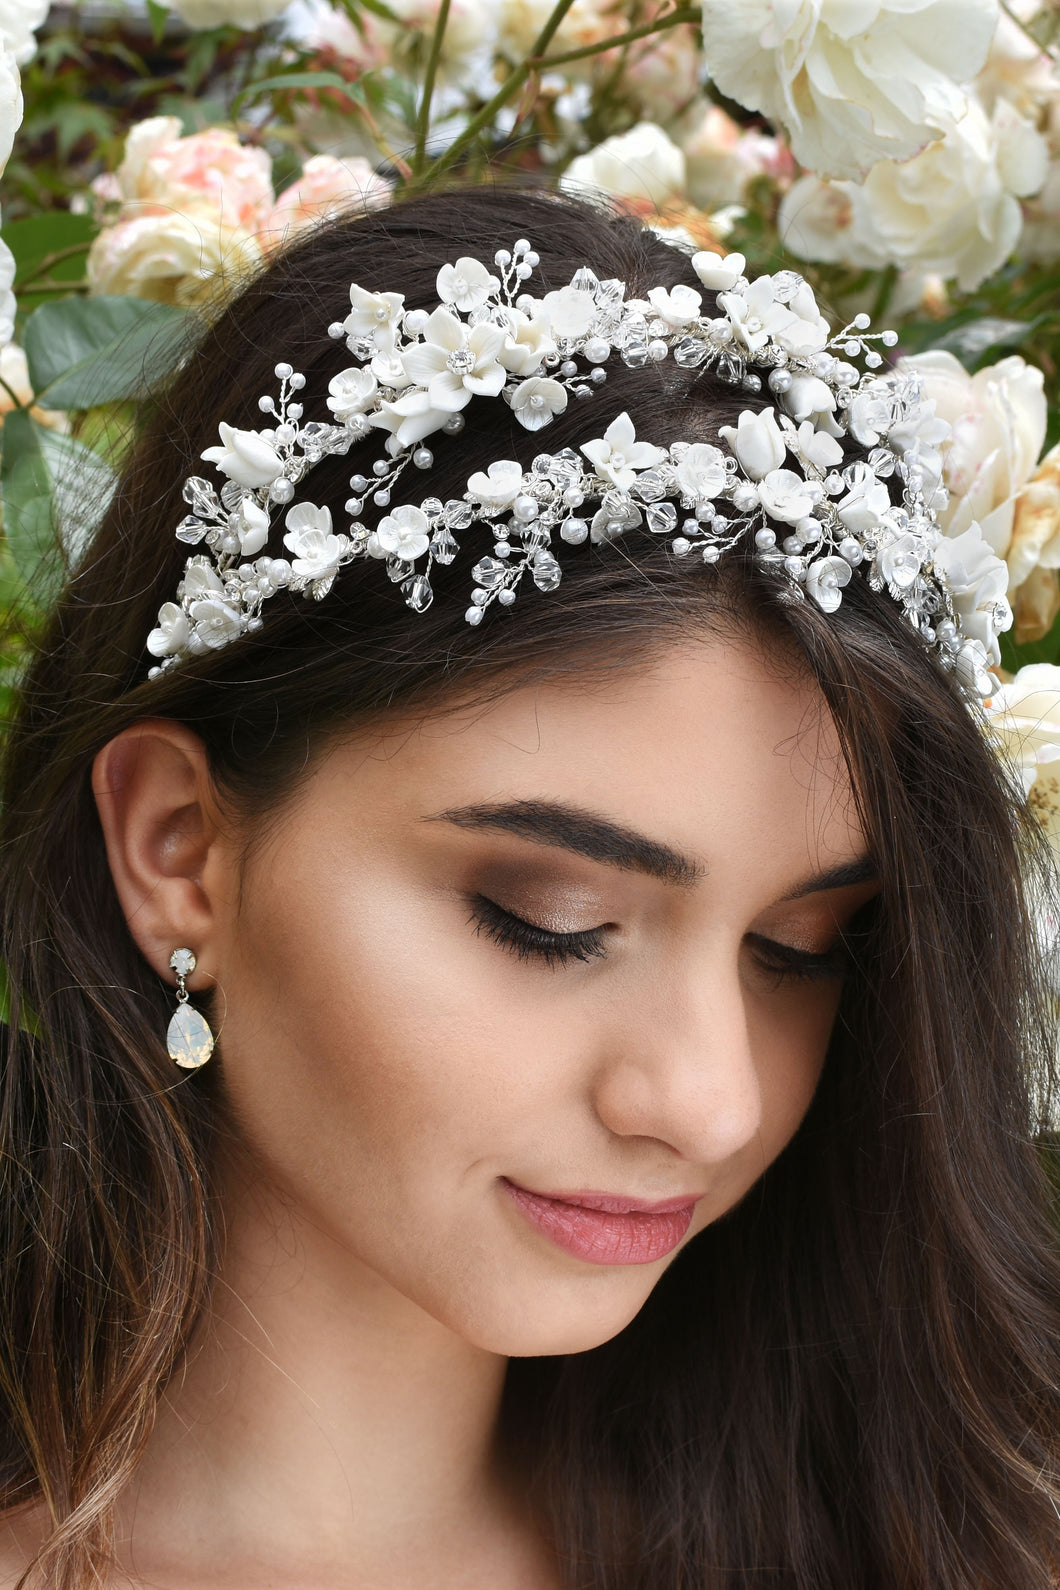 Dark hair bride wears a double row headband of ceramic flowers with a background of white roses